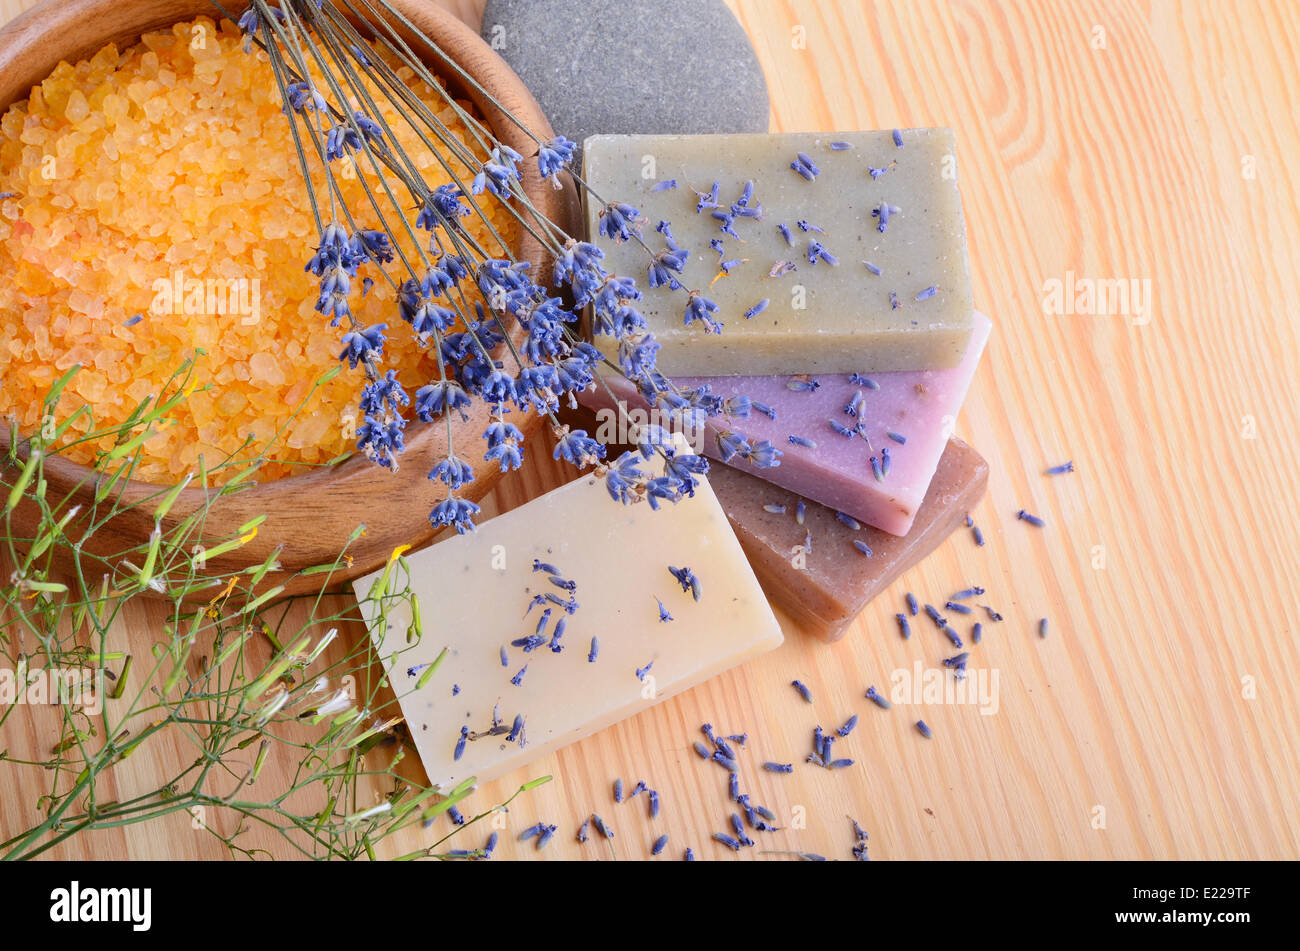 Treatment for bodycare - Stock Image